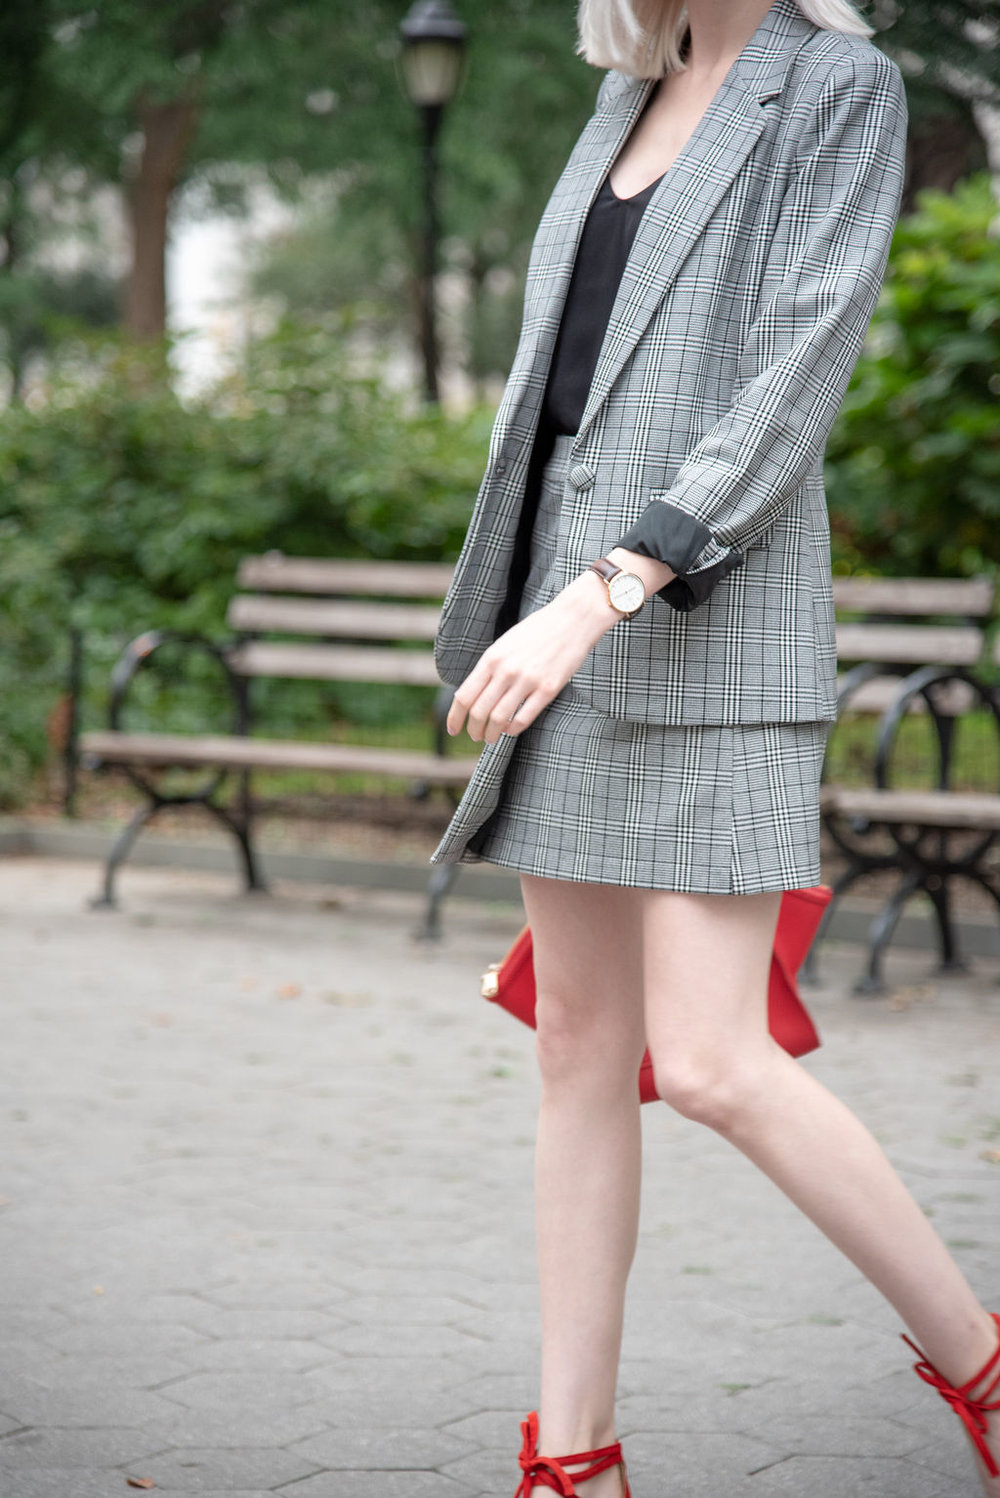 plaid suit, red beret, pantsuit outfit, jcrew outfit, fall style, new york city, daniel wellington